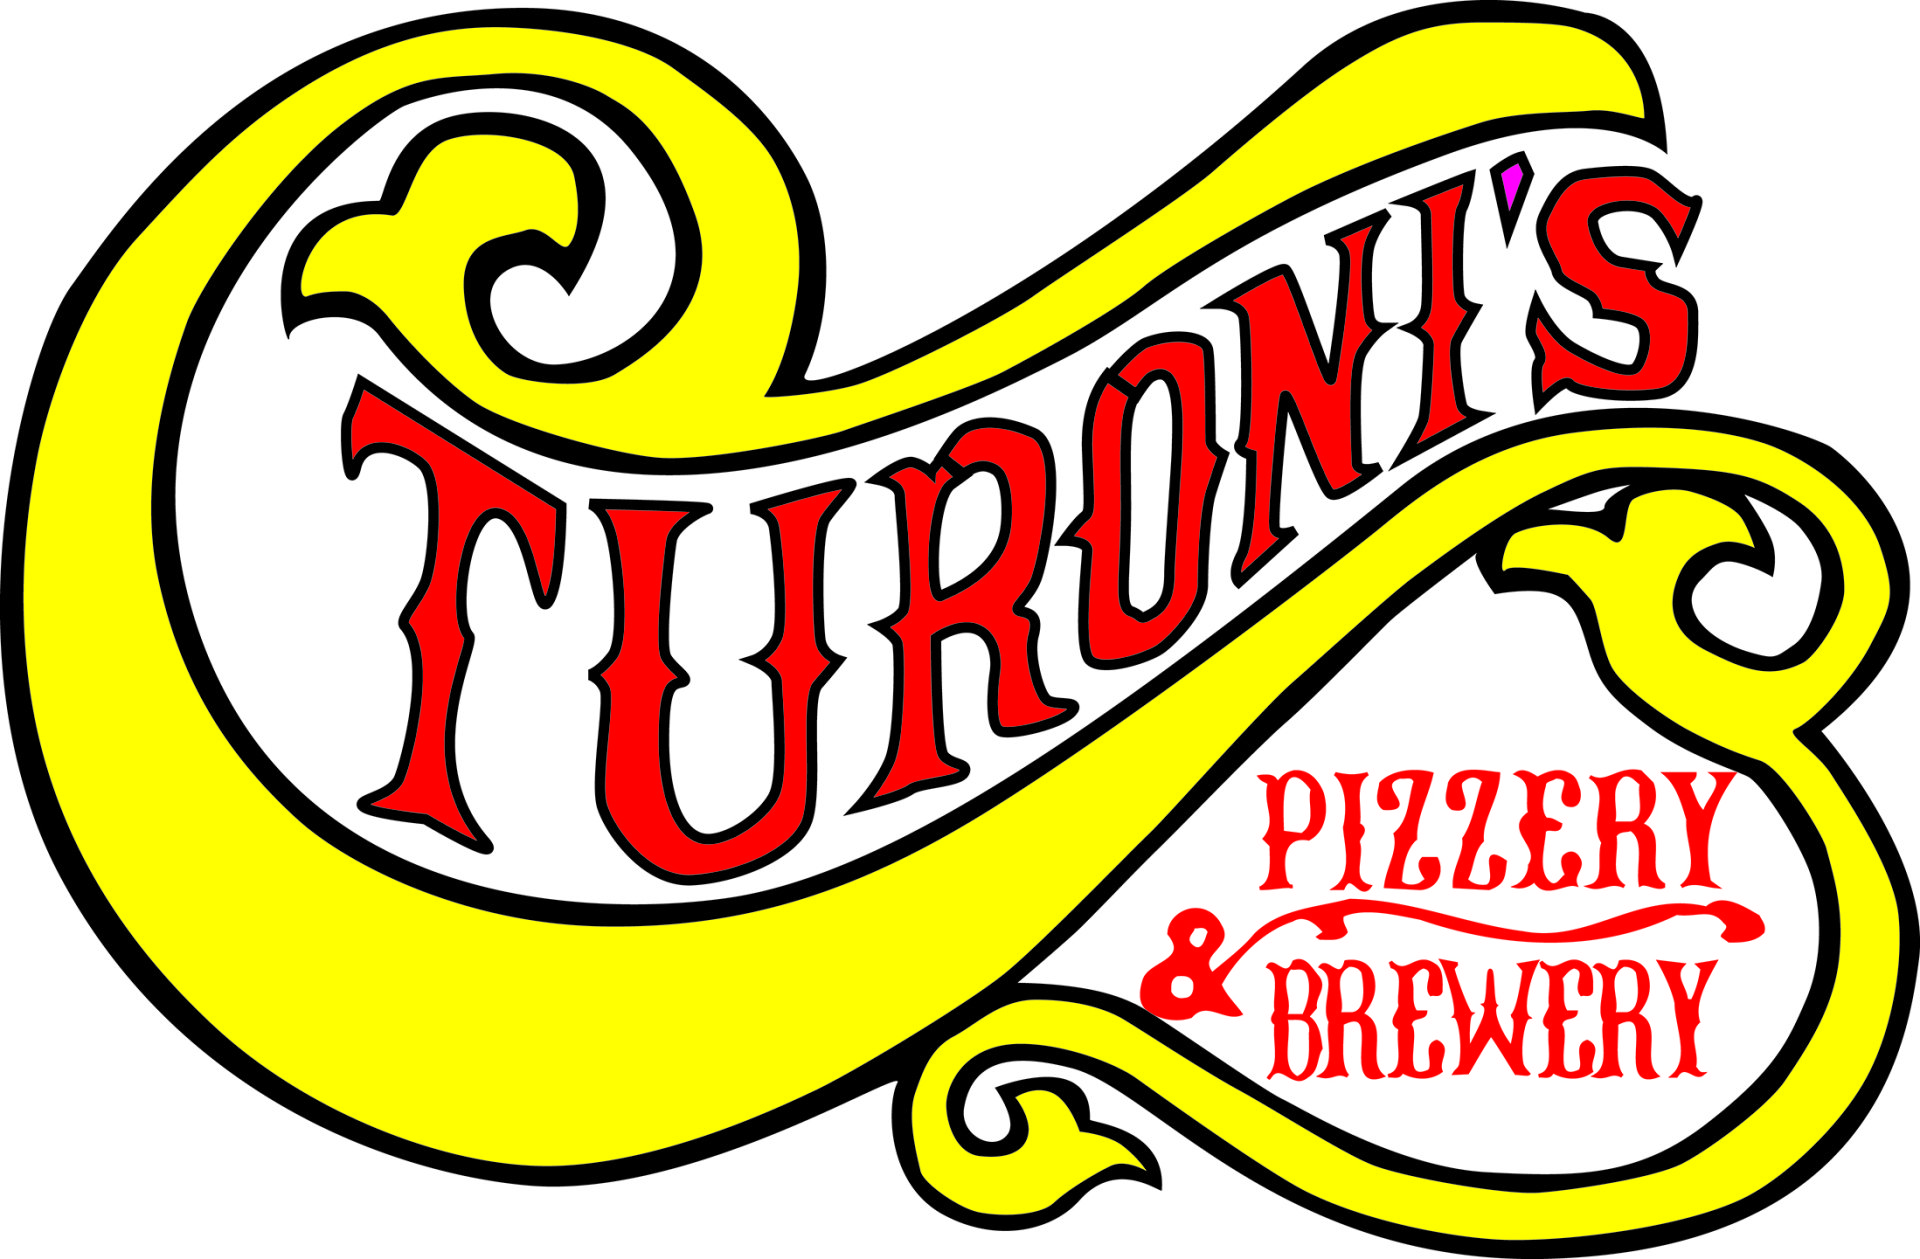 Turonis Pizzery Brewery